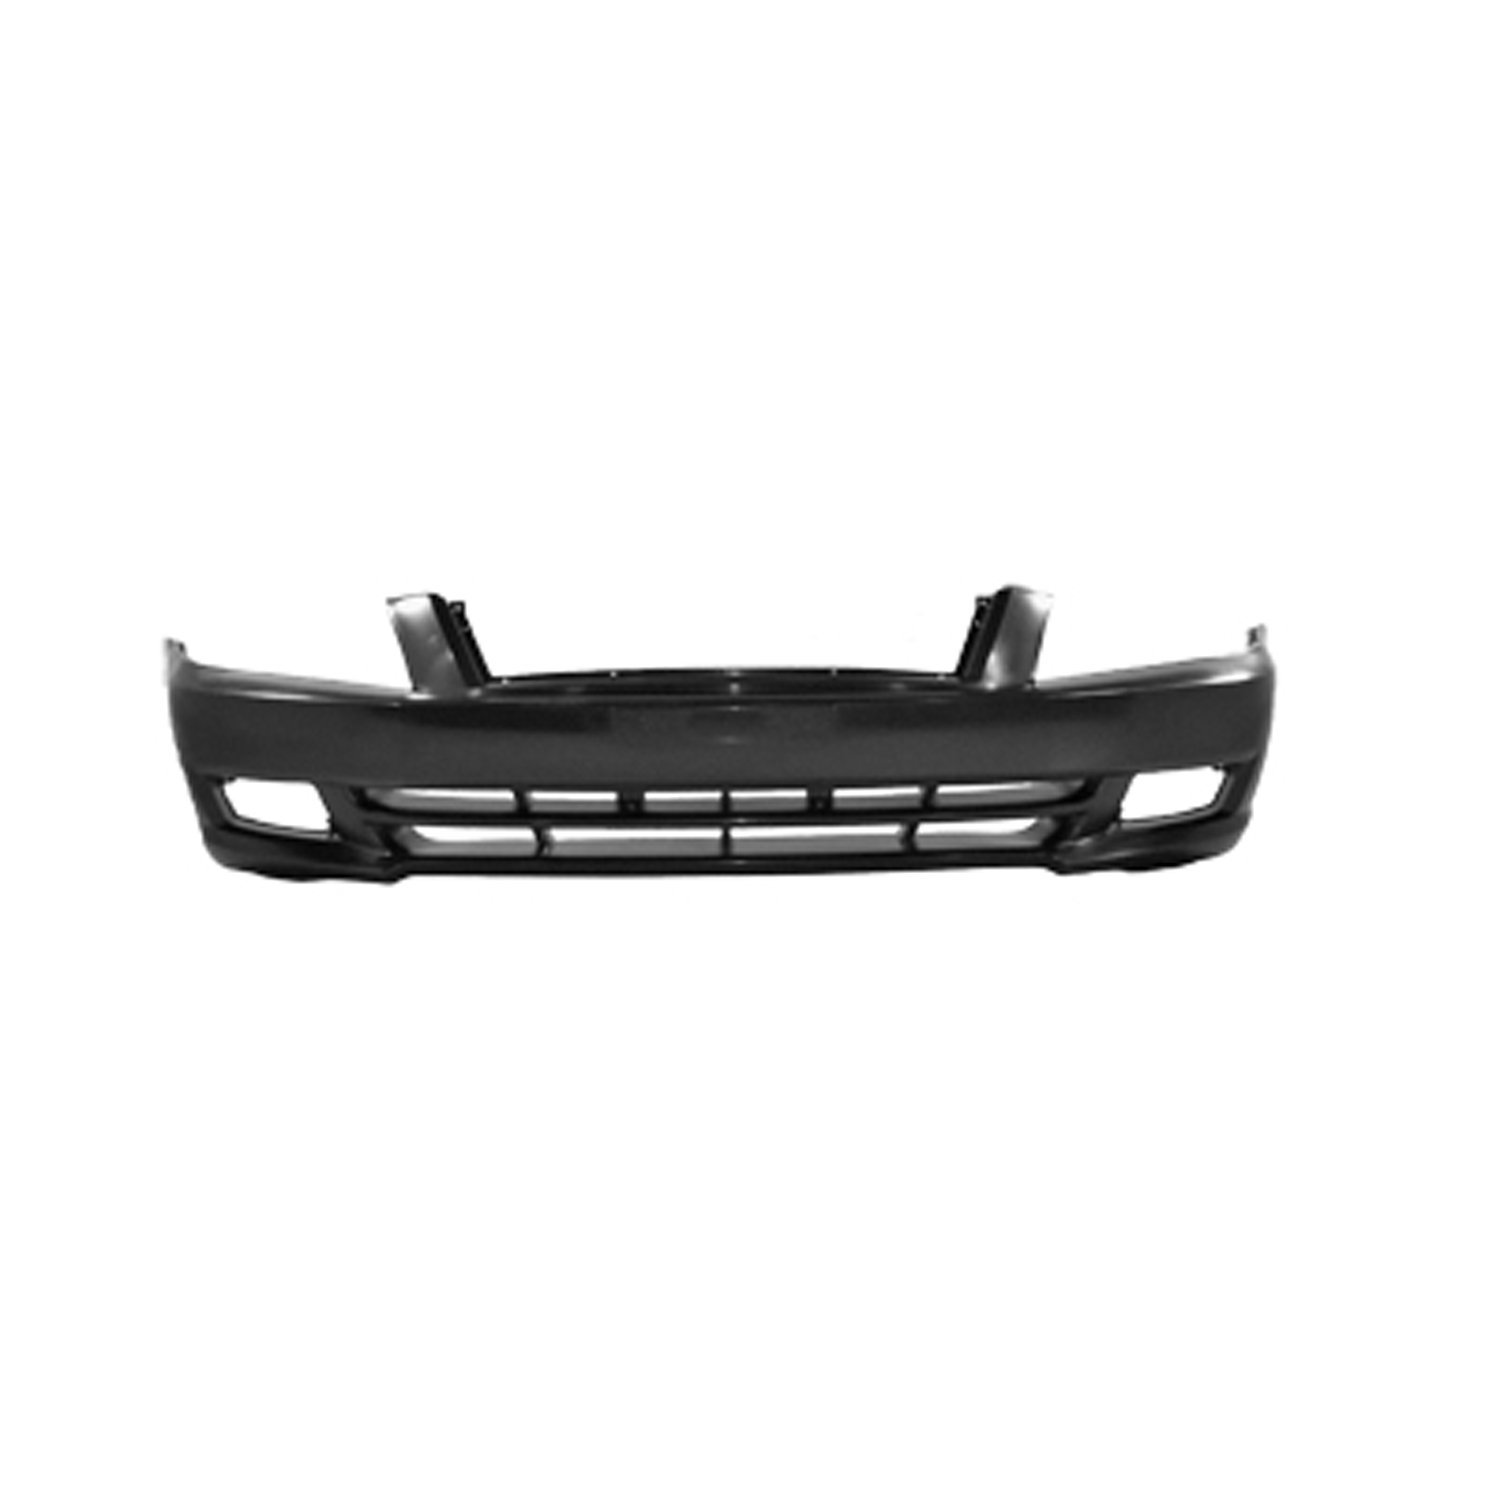 CPP KI1093101 Front Direct Fit Textured Plastic Valance for 2011-2013 Kia Optima